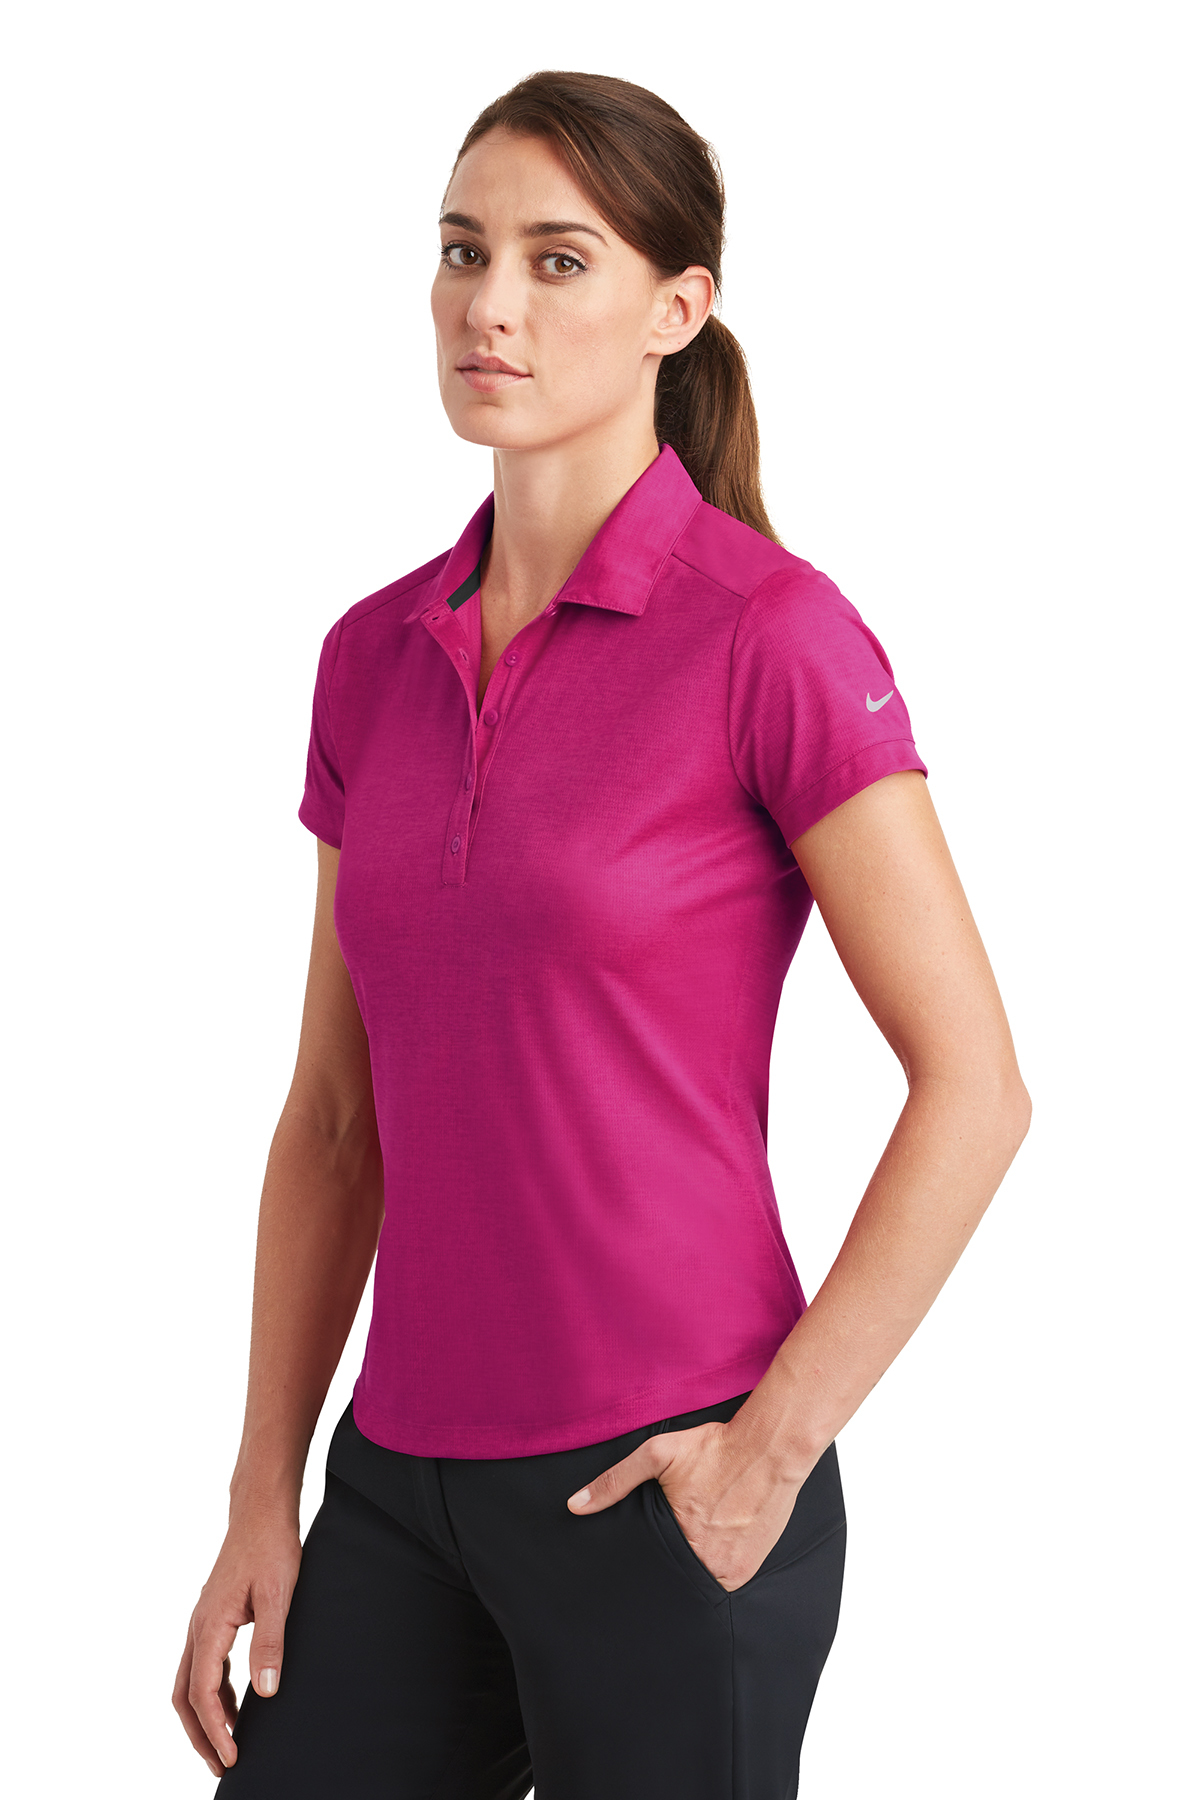 65eb4a3be975c ... Nike Ladies Dri-FIT Crosshatch Polo. A maximum of 8 logos have been  uploaded. Please remove a logo from My Logos to continue